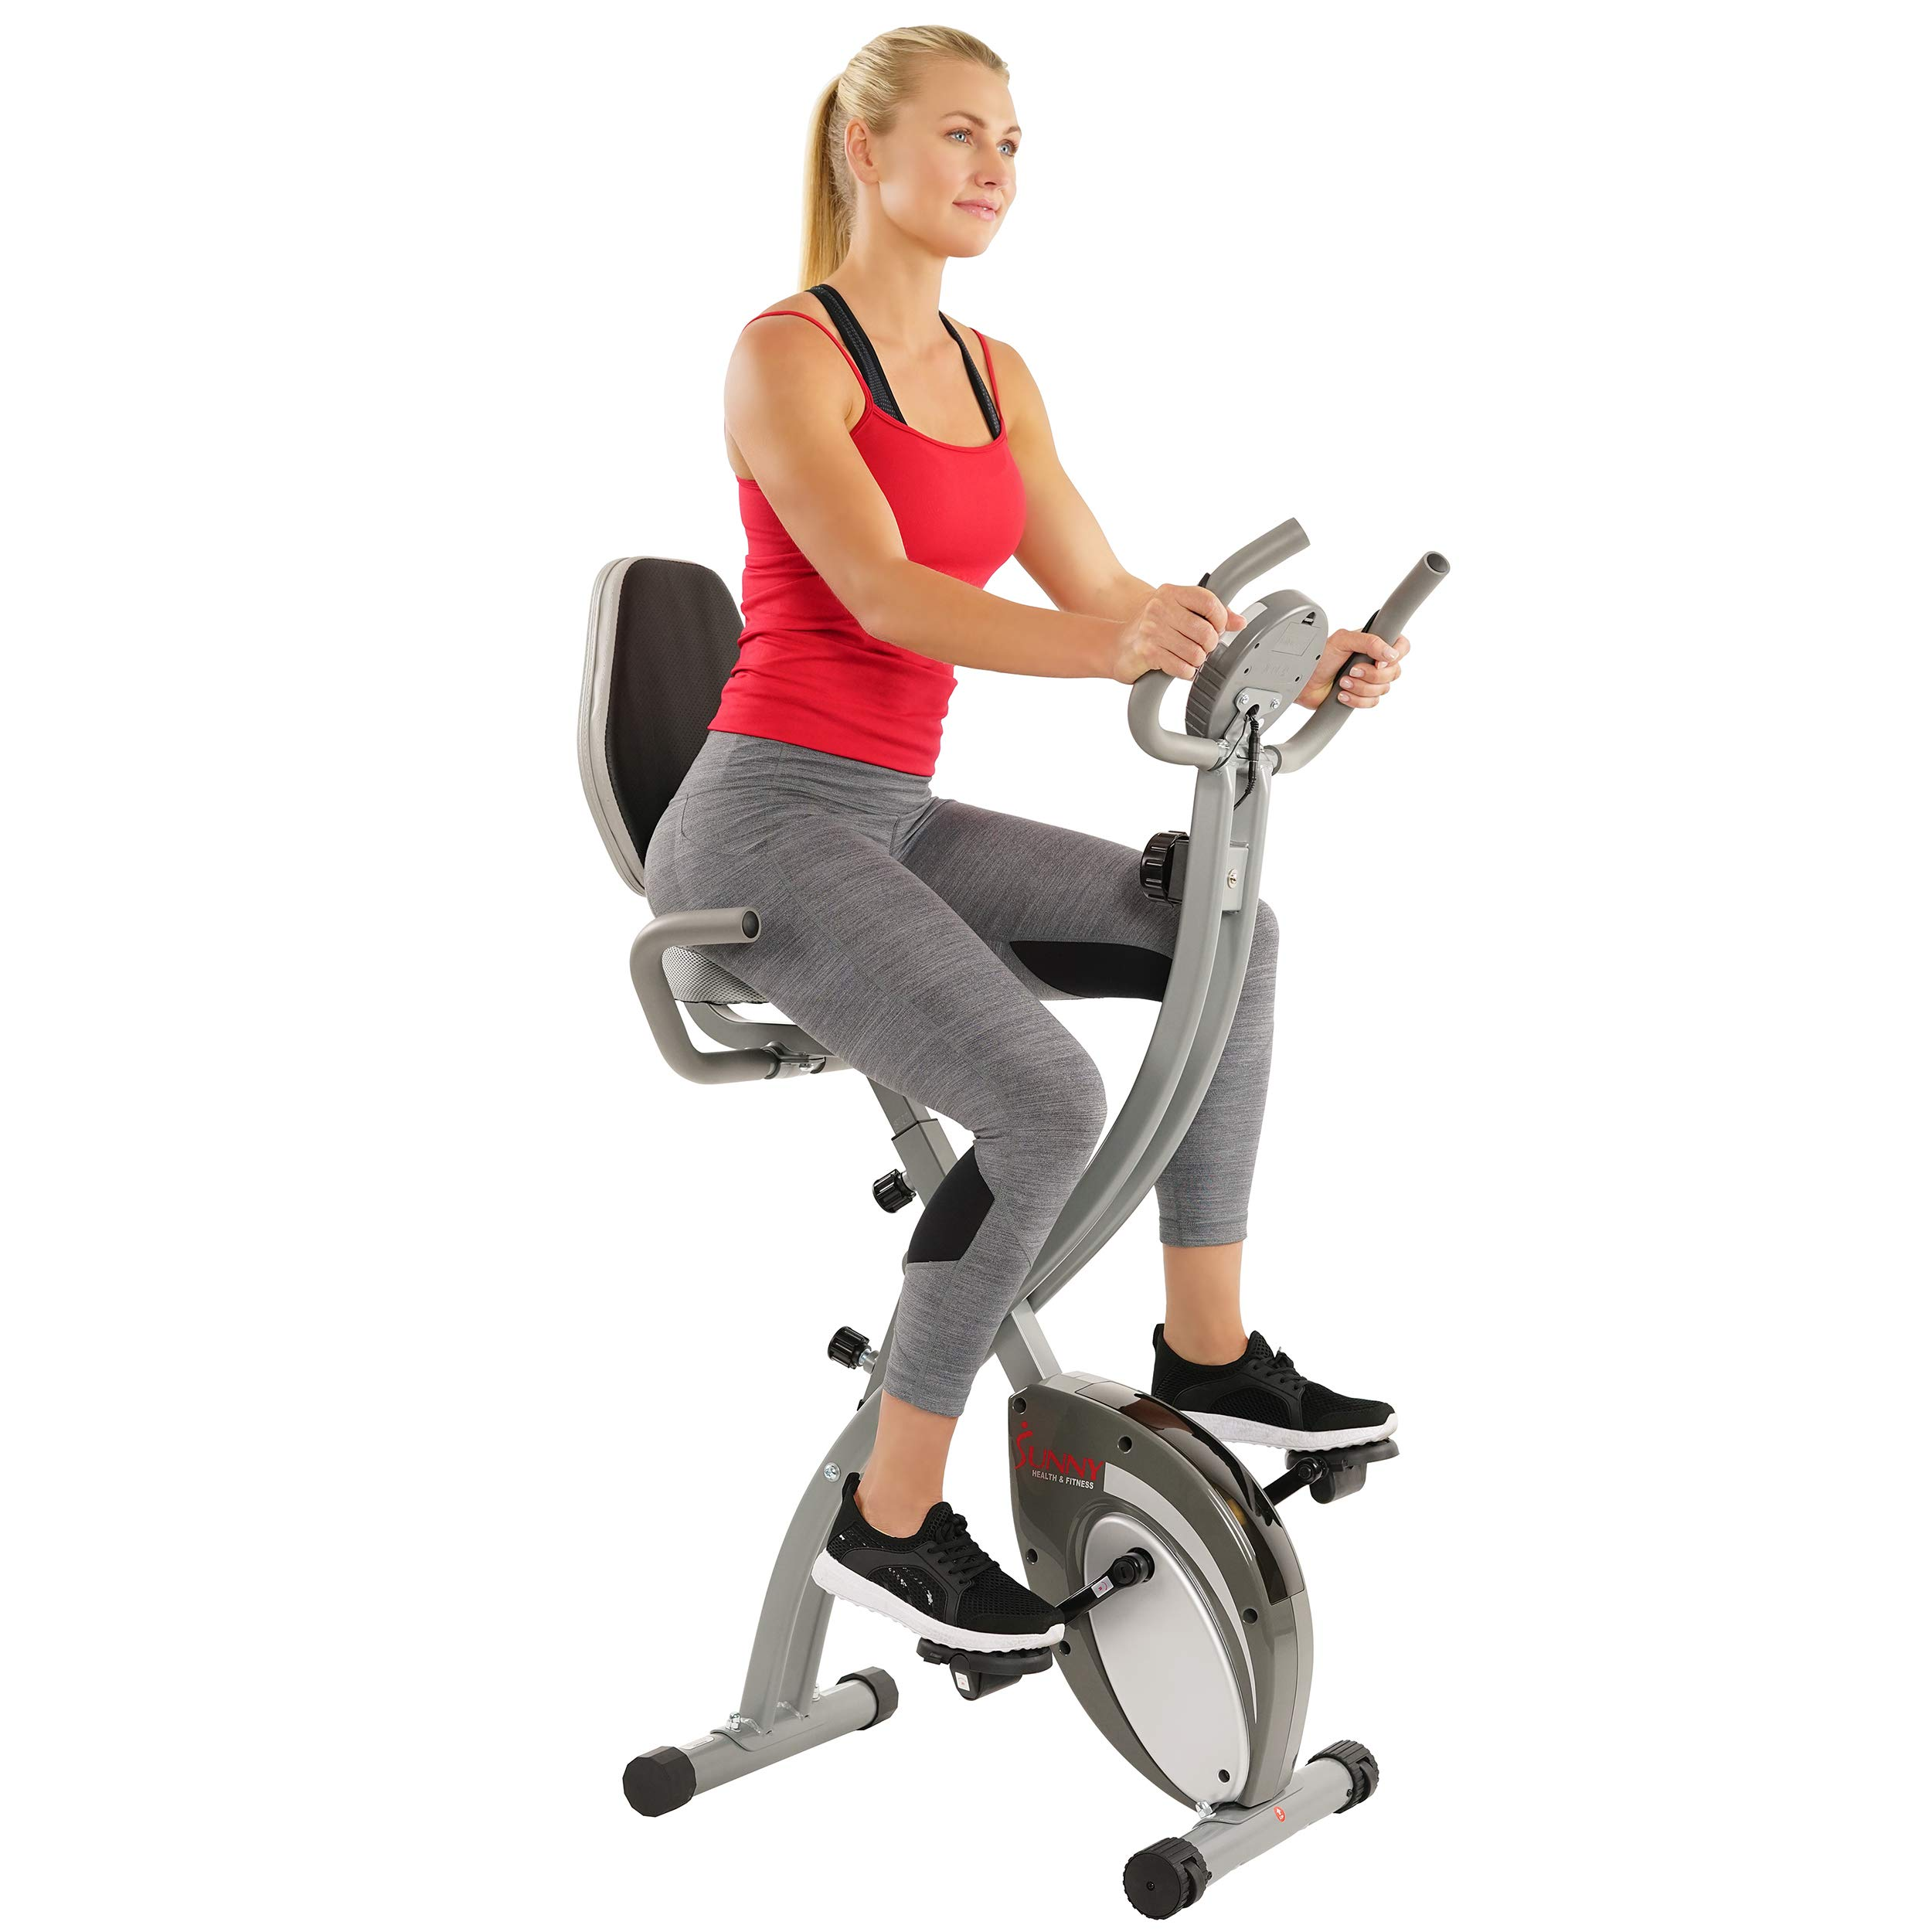 Sunny Health & Fitness Comfort XL Folding Semi-Recumbent Bike - SF-B2721 by Sunny Health & Fitness (Image #1)